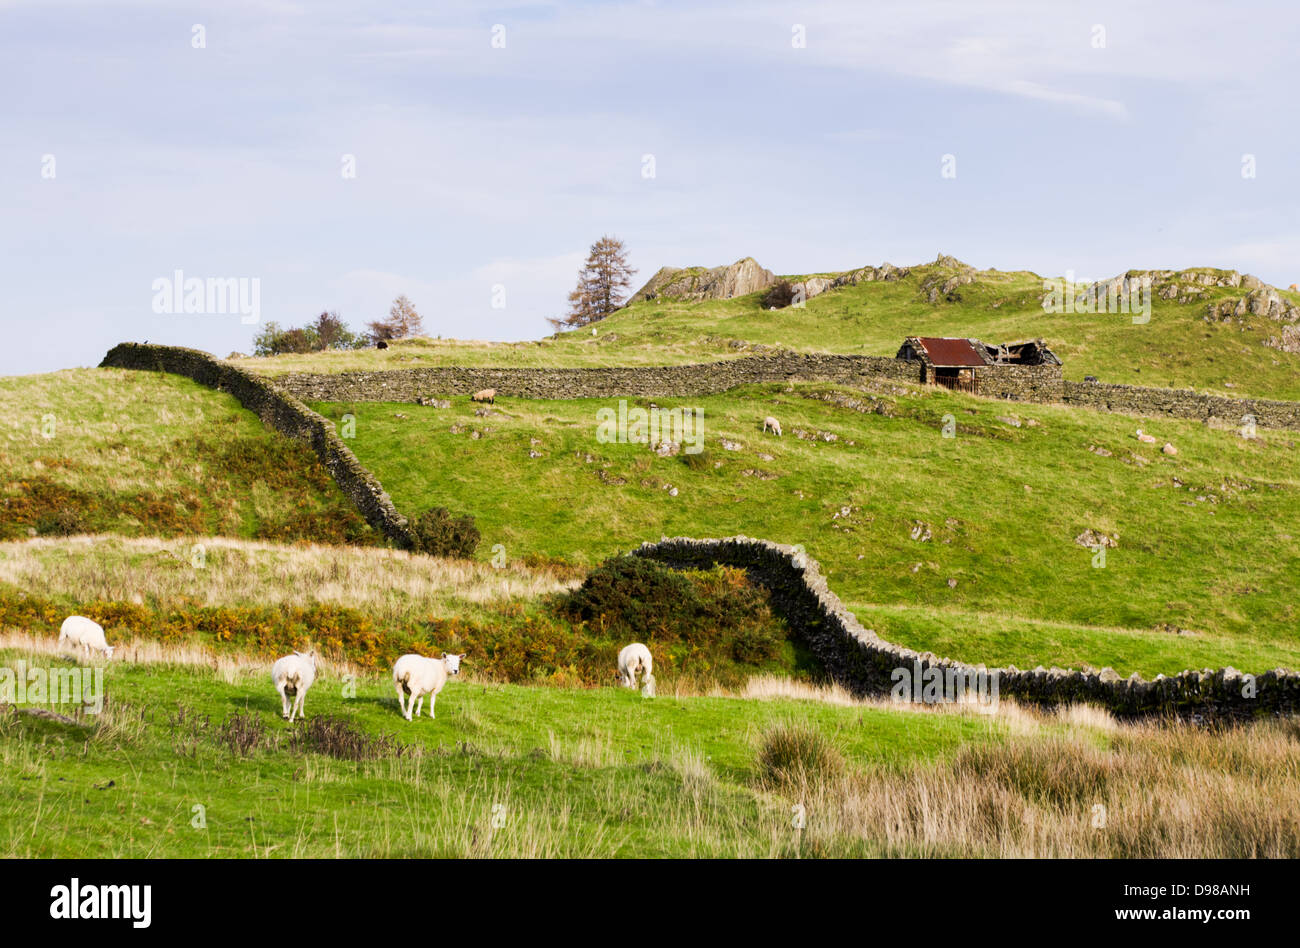 A typical lake district scene of green hills with a couple of sheep, stone fence and an old building. - Stock Image